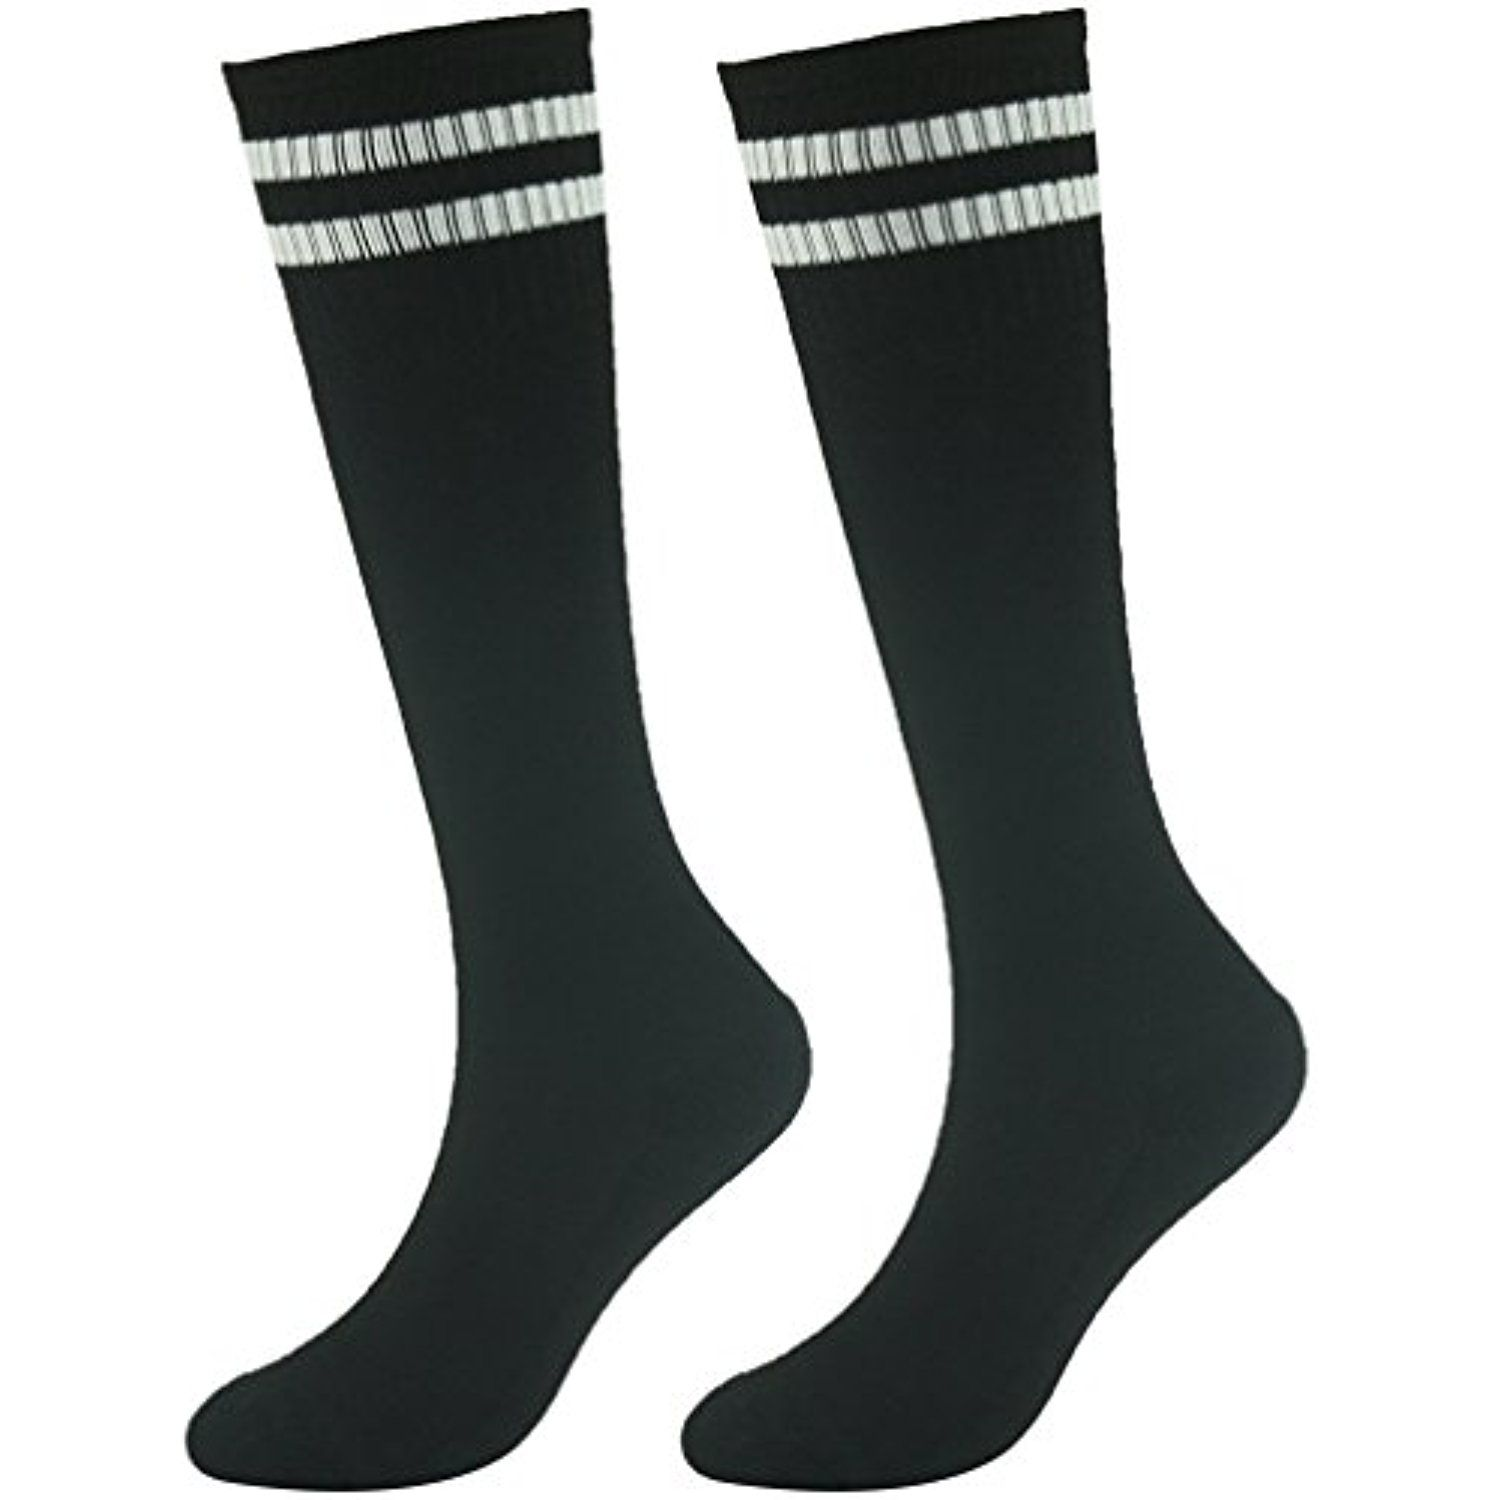 8e8d1ca55 Youth Soccer Socks Fasoar Teens Knee High Football Socks Long Striped Rugby  Tube Socks 2 6 10 Pairs     You can get additional details at the image  link.